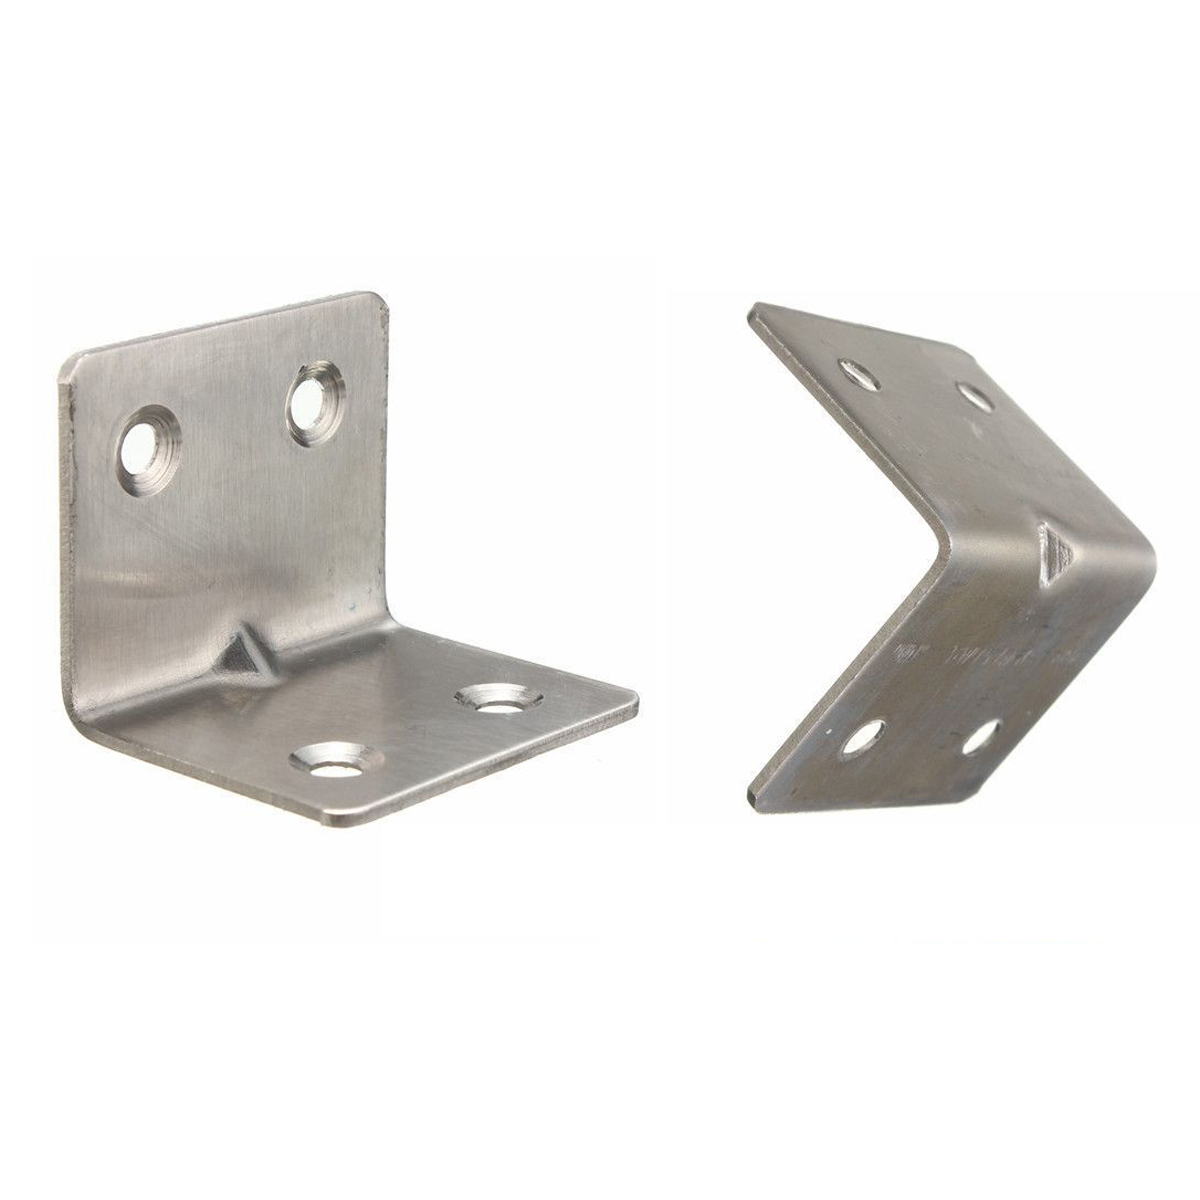 30mm X 30mm Stainless Steel Kitchen Right Angle Corner